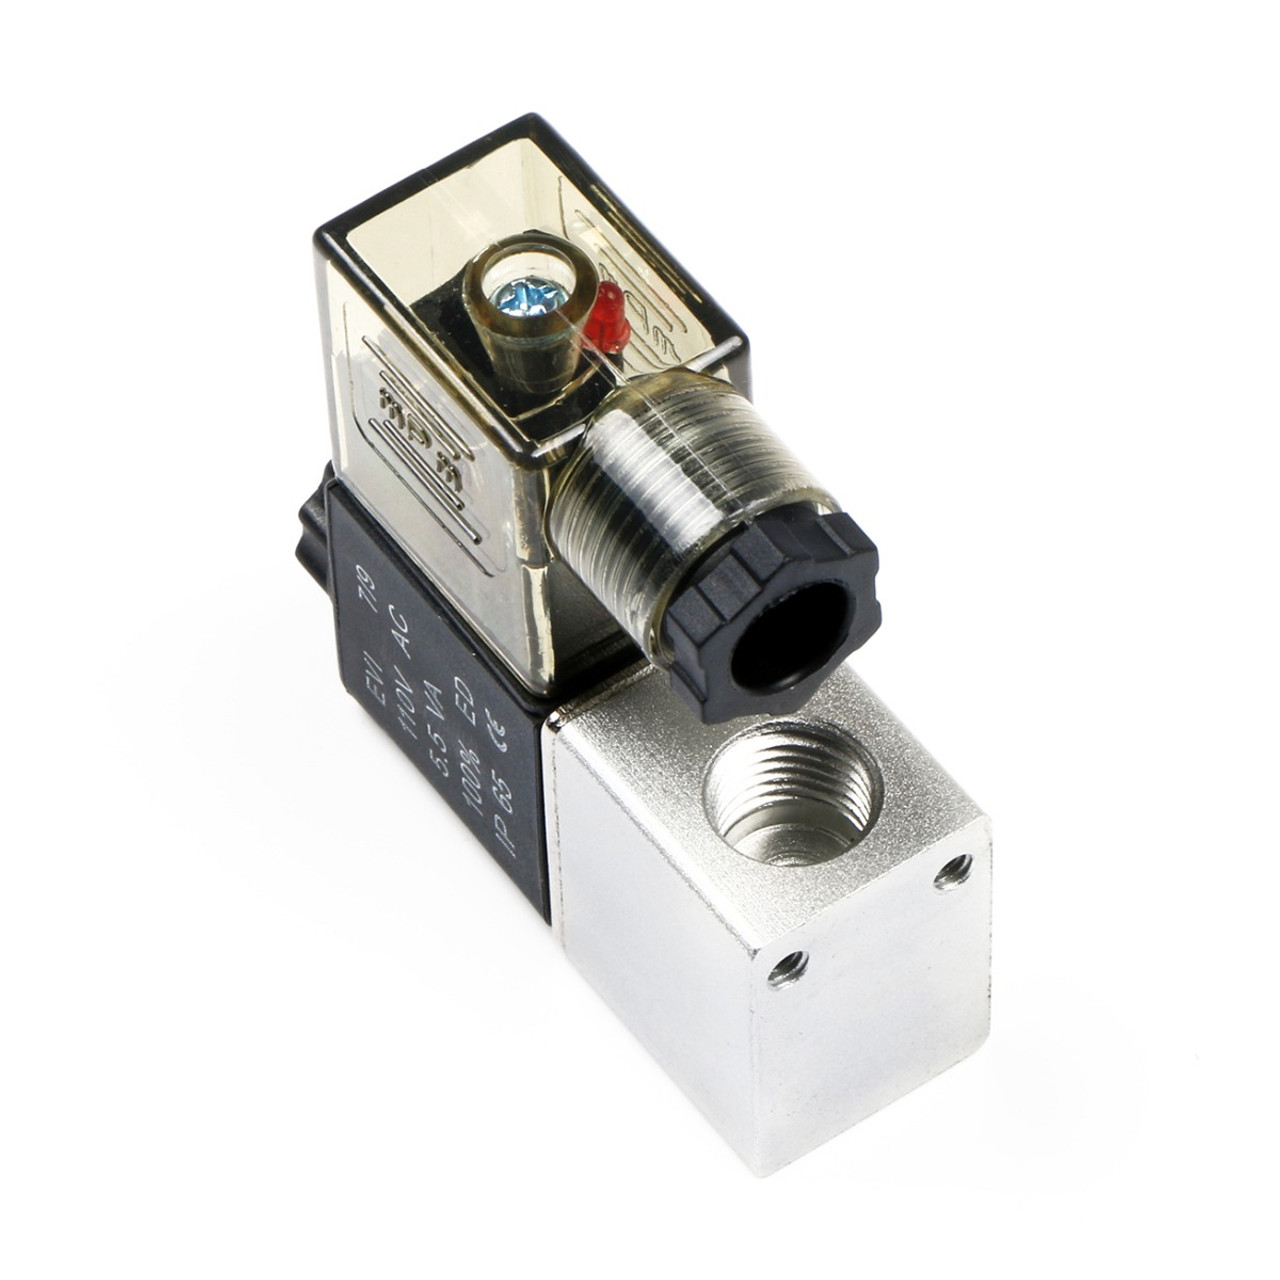 "USSOLID 1/4"" 2 Way 2 Position Pneumatic Electric  Solenoid Valve AC 110 V"